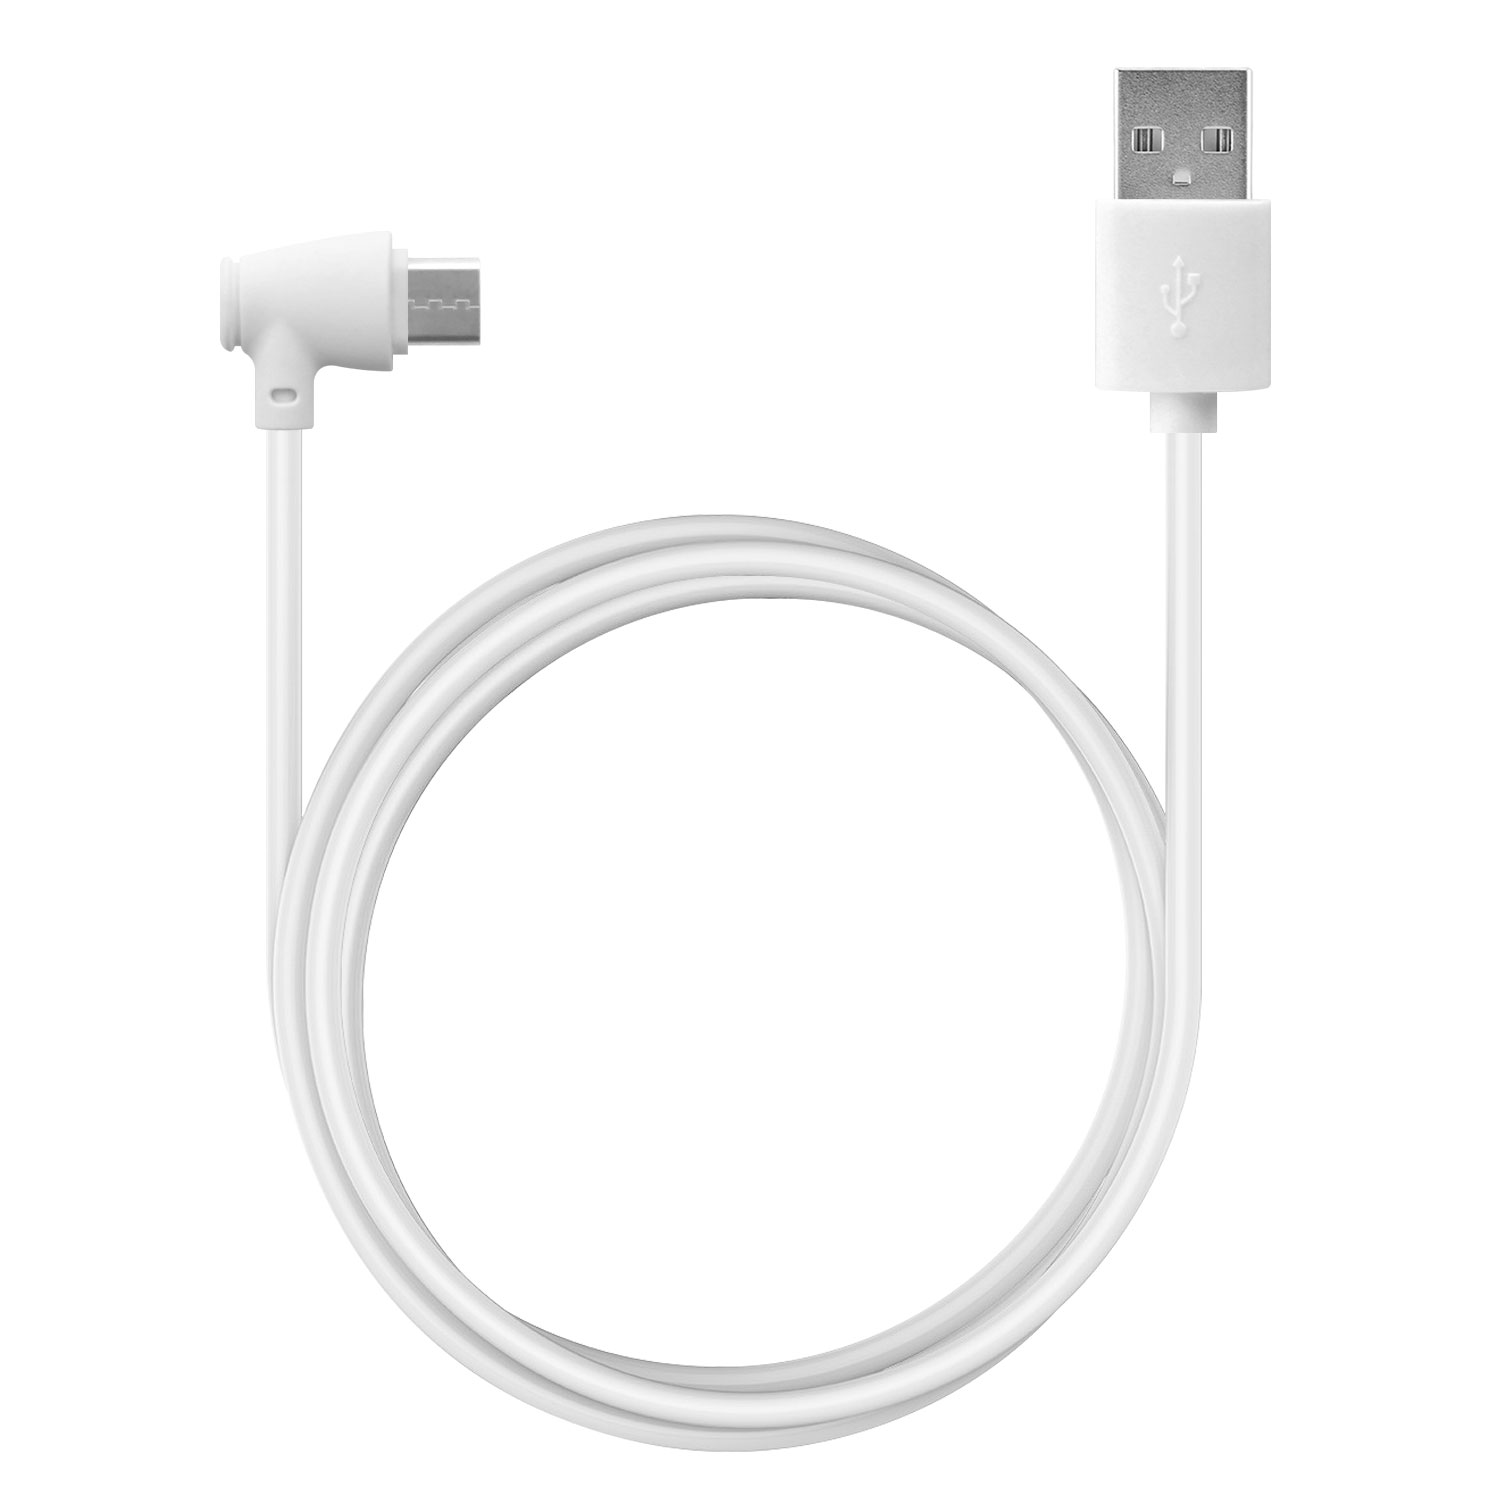 Samsung Galaxy S9 USB Type-C To USB Type-A Data Charging Cable White 3.3ft Angled